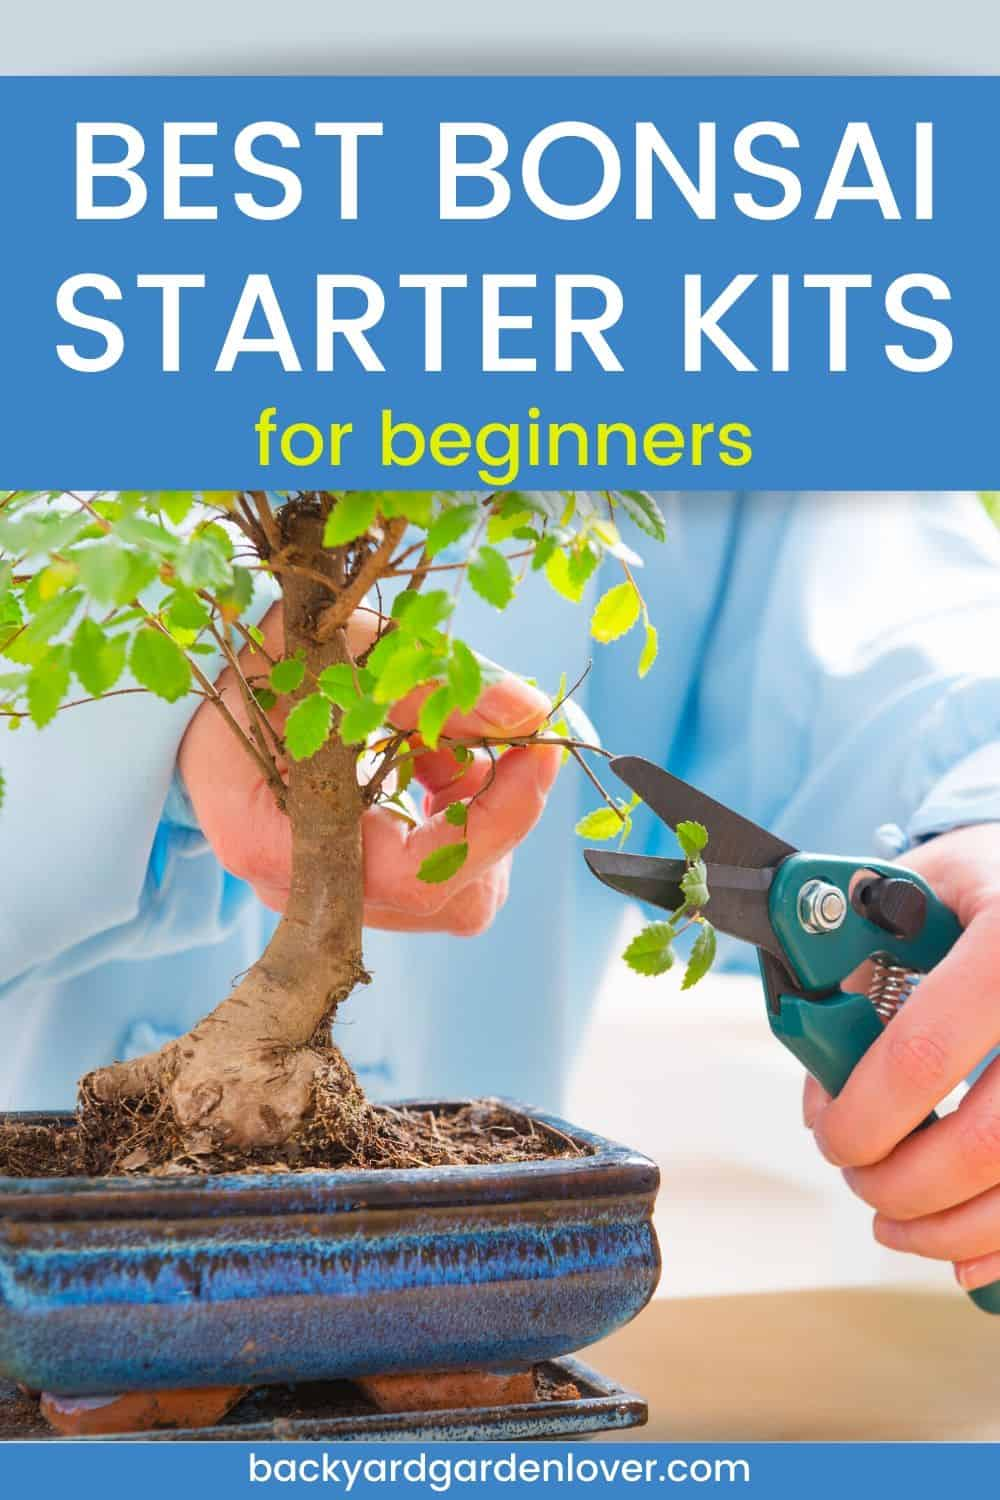 Best bonsai starter kits for beginners